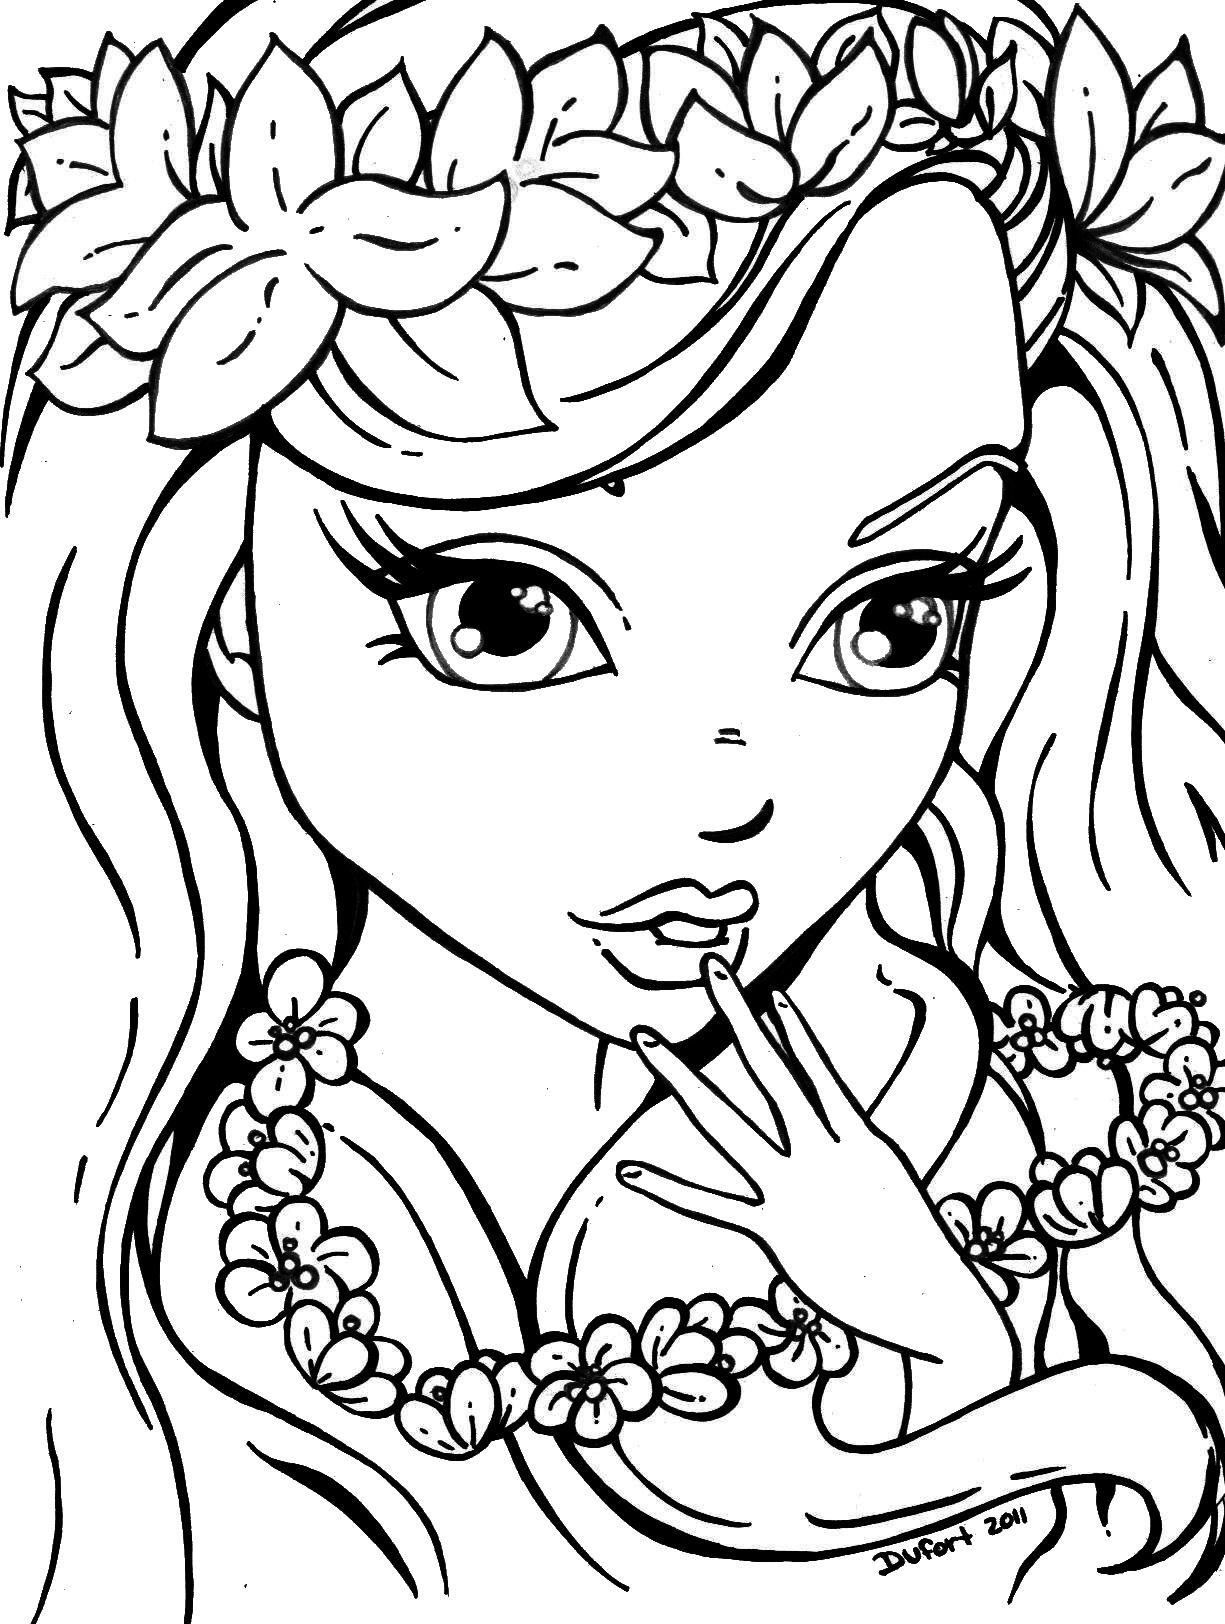 coloring pages for teenage girl coloring pages for teen girls | Colorings | Pinterest | Coloring  coloring pages for teenage girl